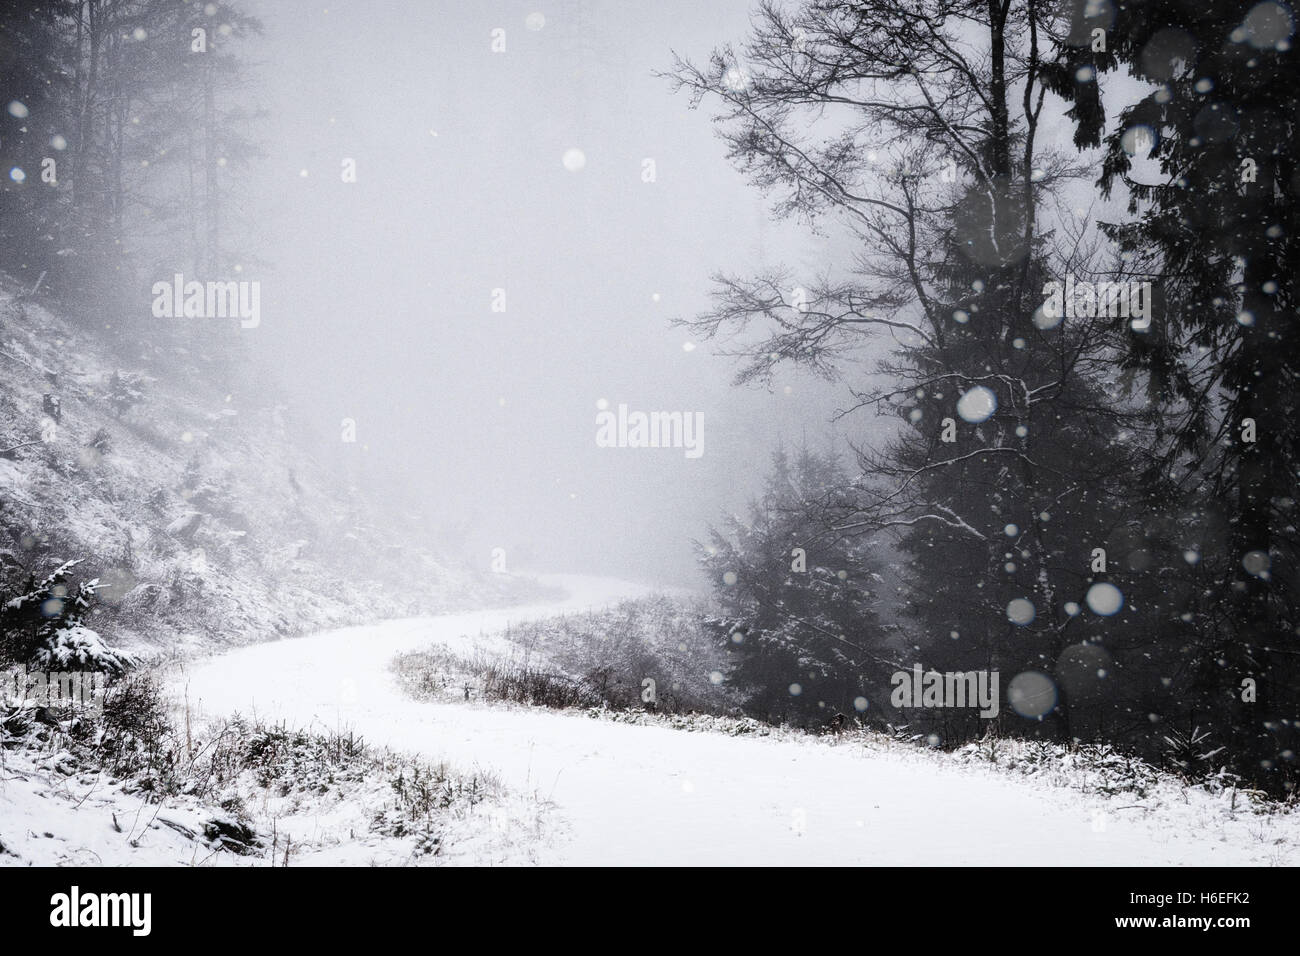 Snow falls on a small mountain road through the forest. - Stock Image